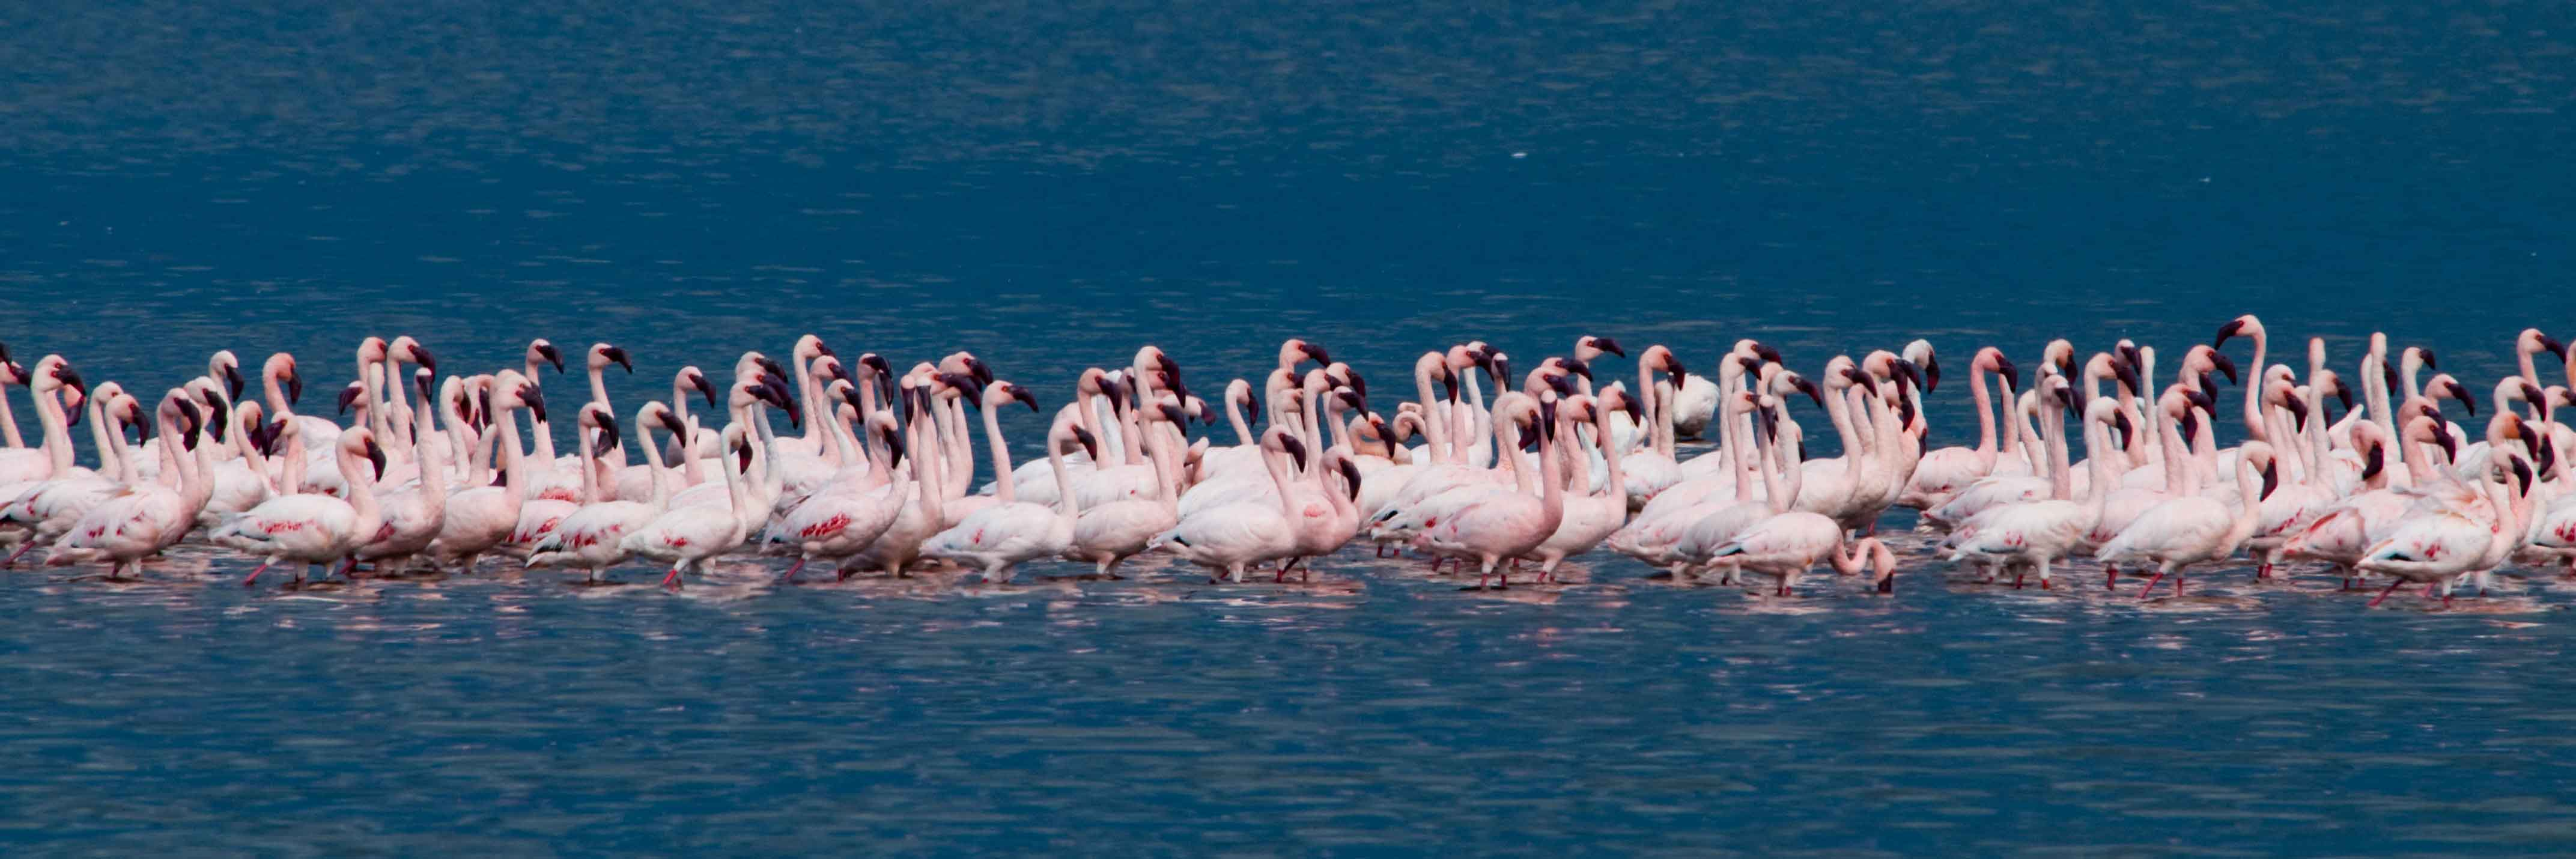 Lesser Flamingoes.jpg